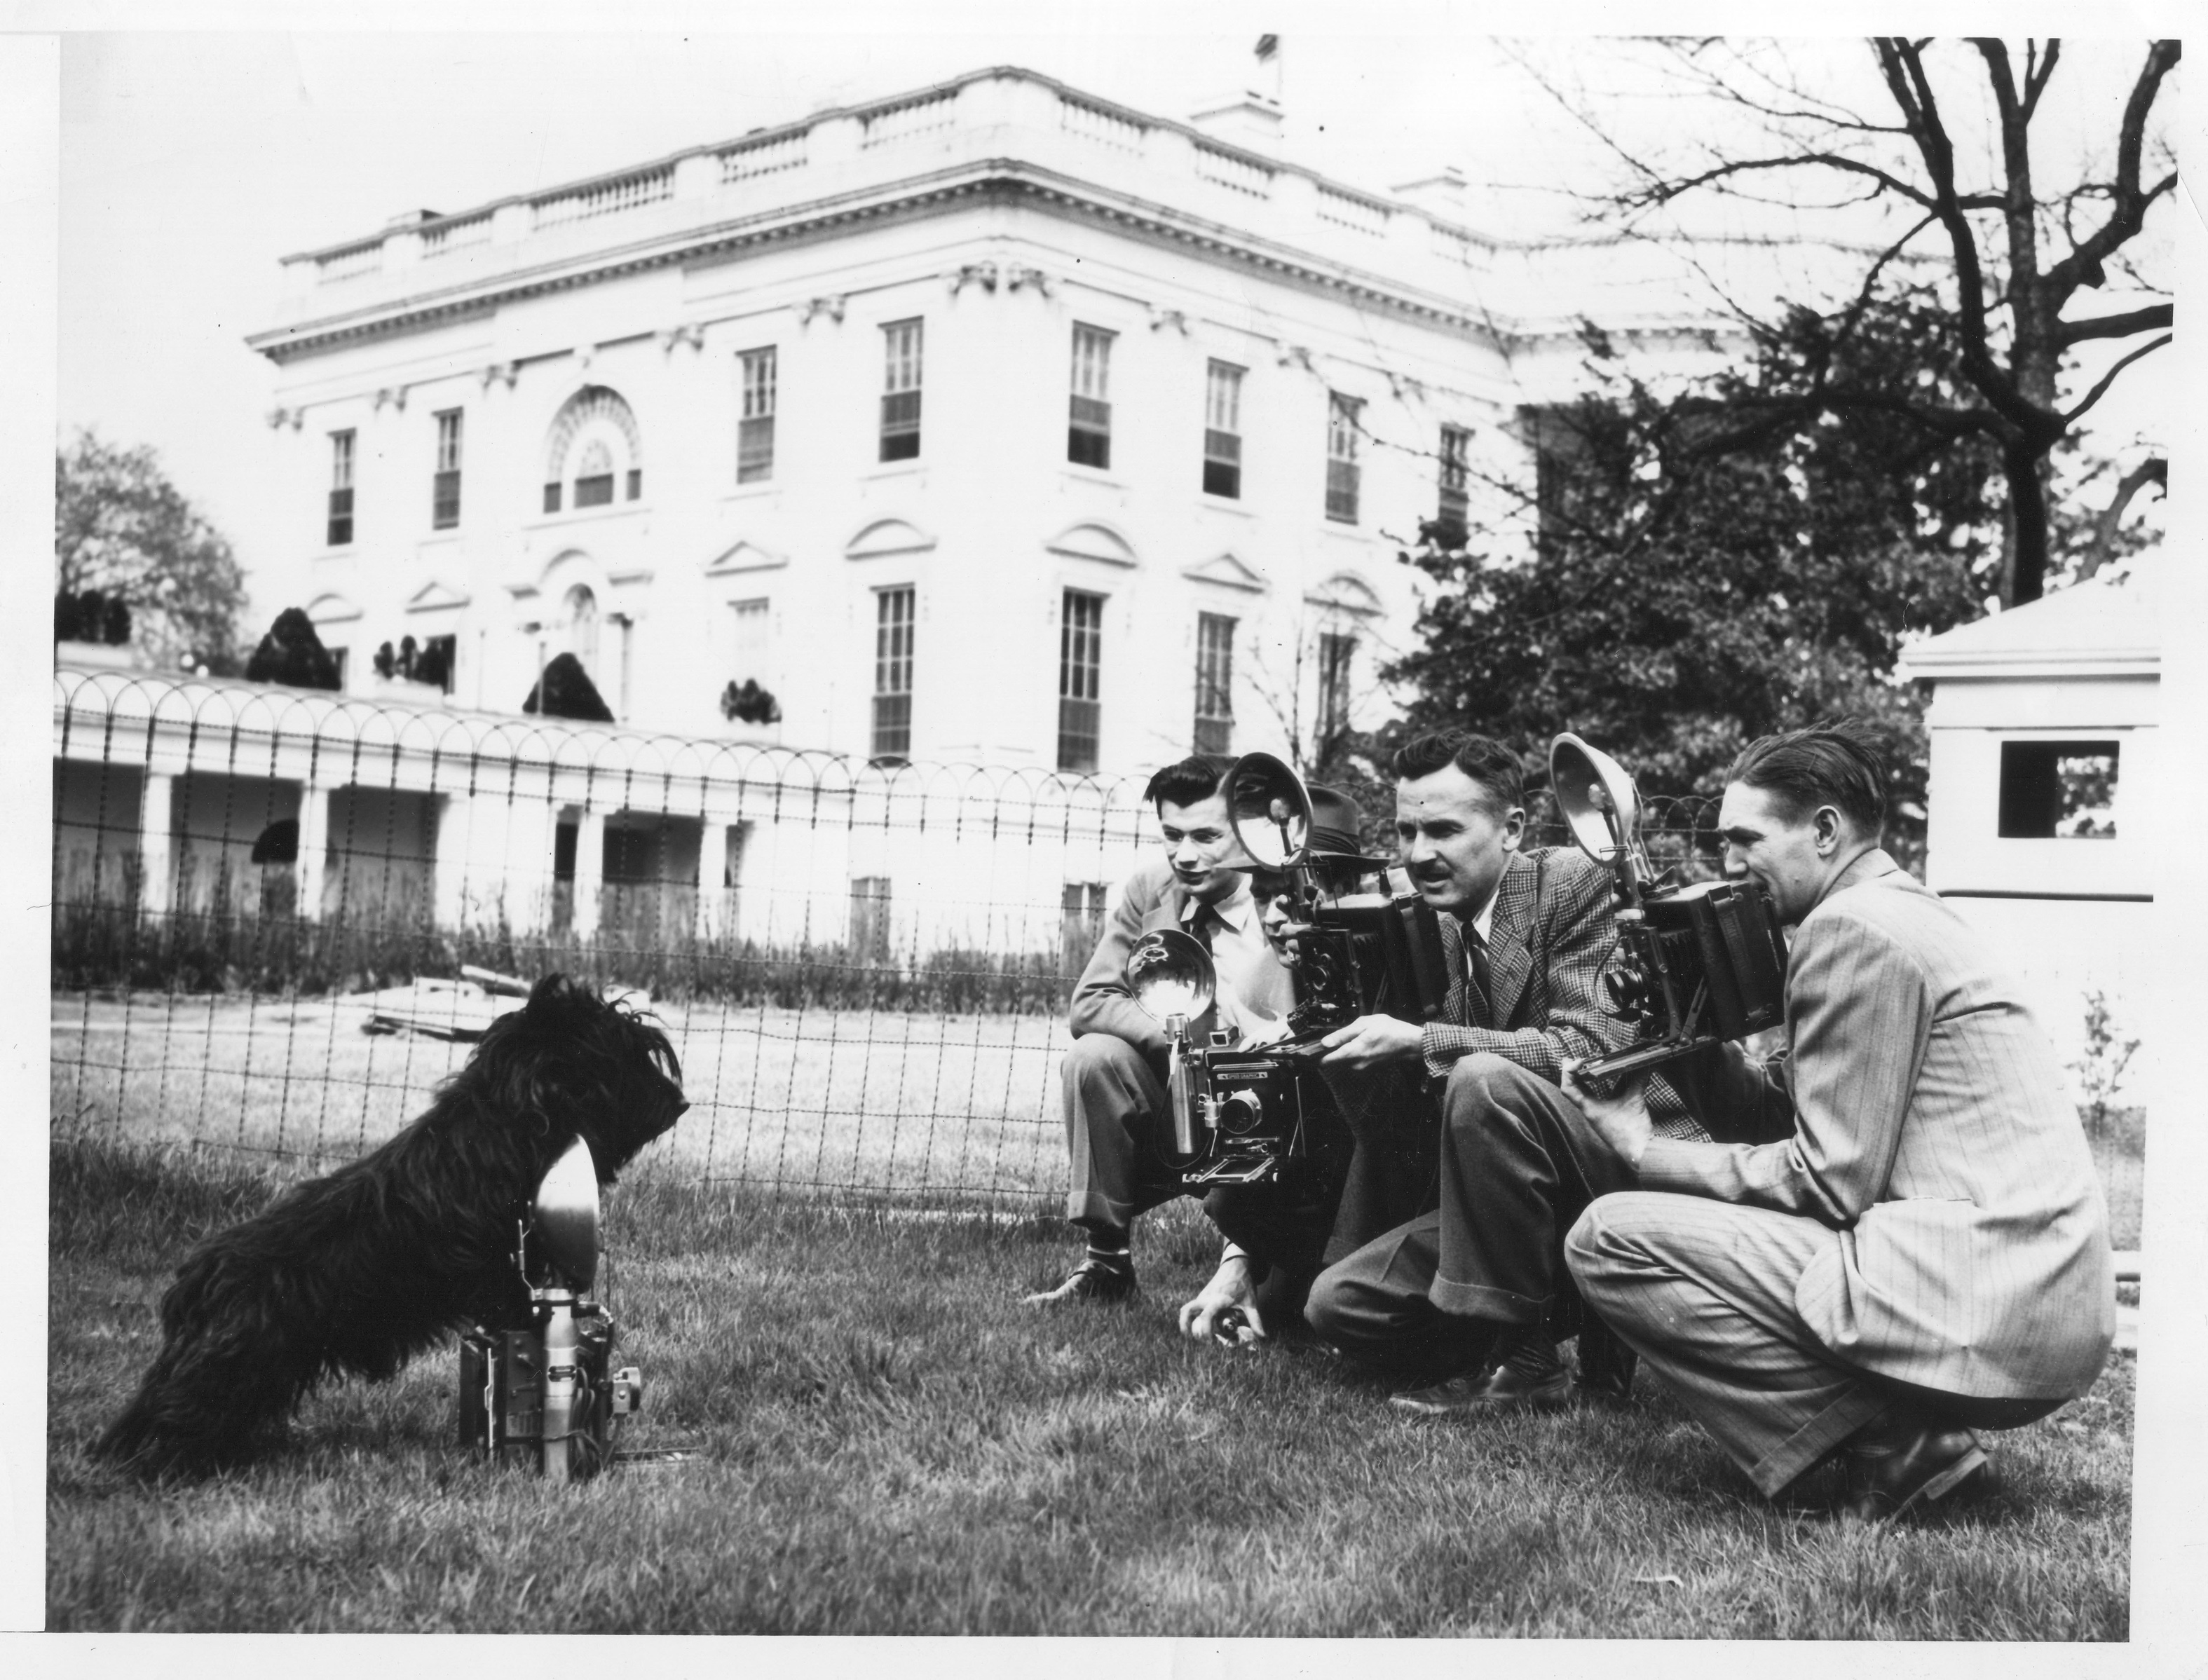 Fala Photographing the Photographers at the White House, Washington, DC, 04/07/1942. (National Archives Identifier 6728525)